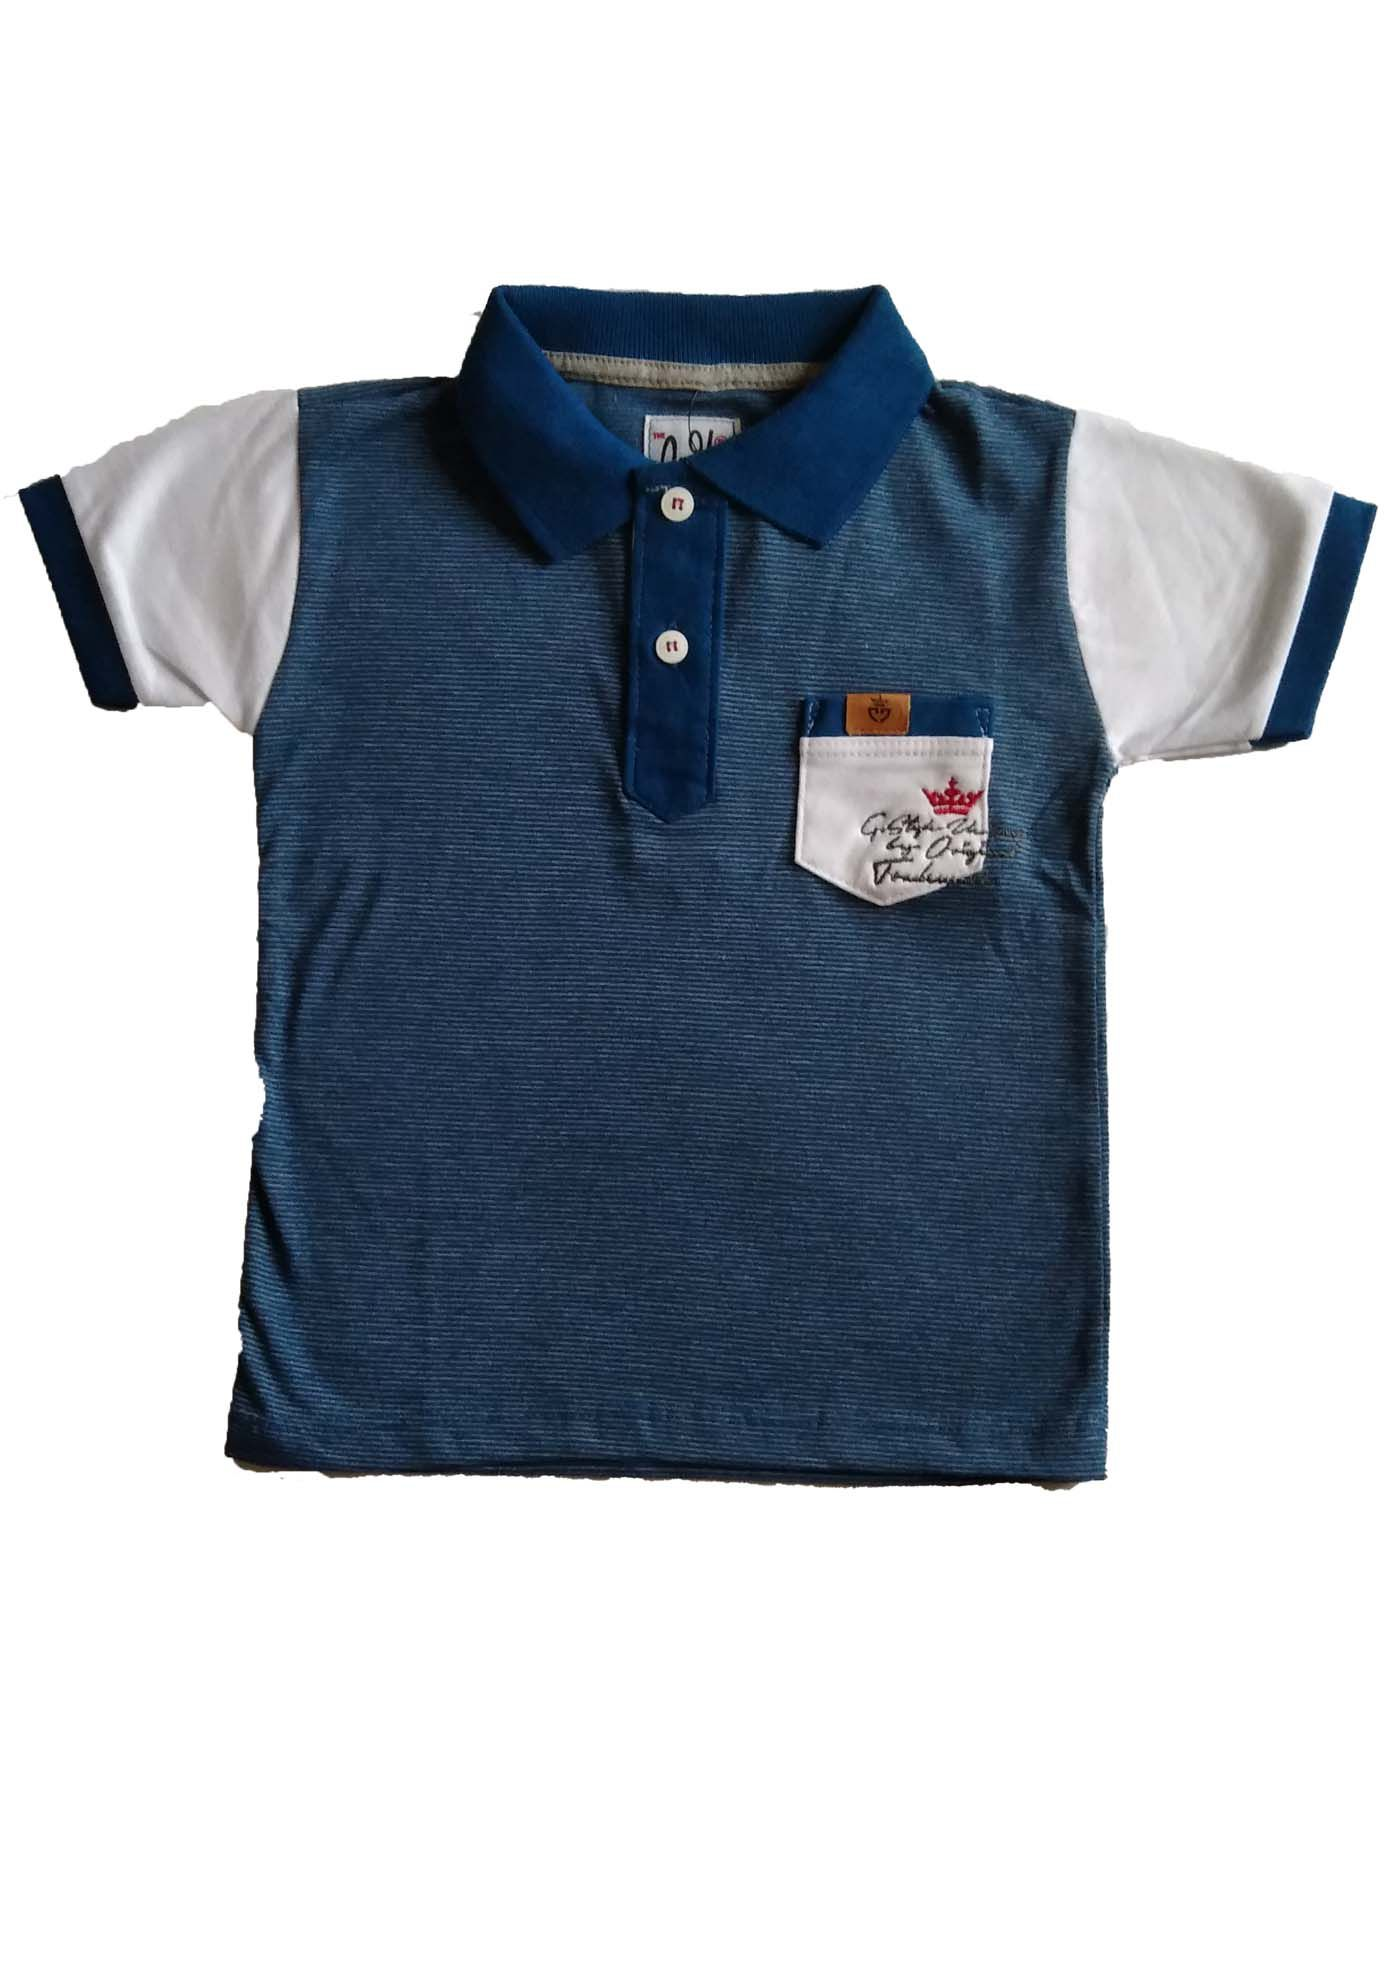 CAMISETA POLO ESTAMPADA E BORDADA